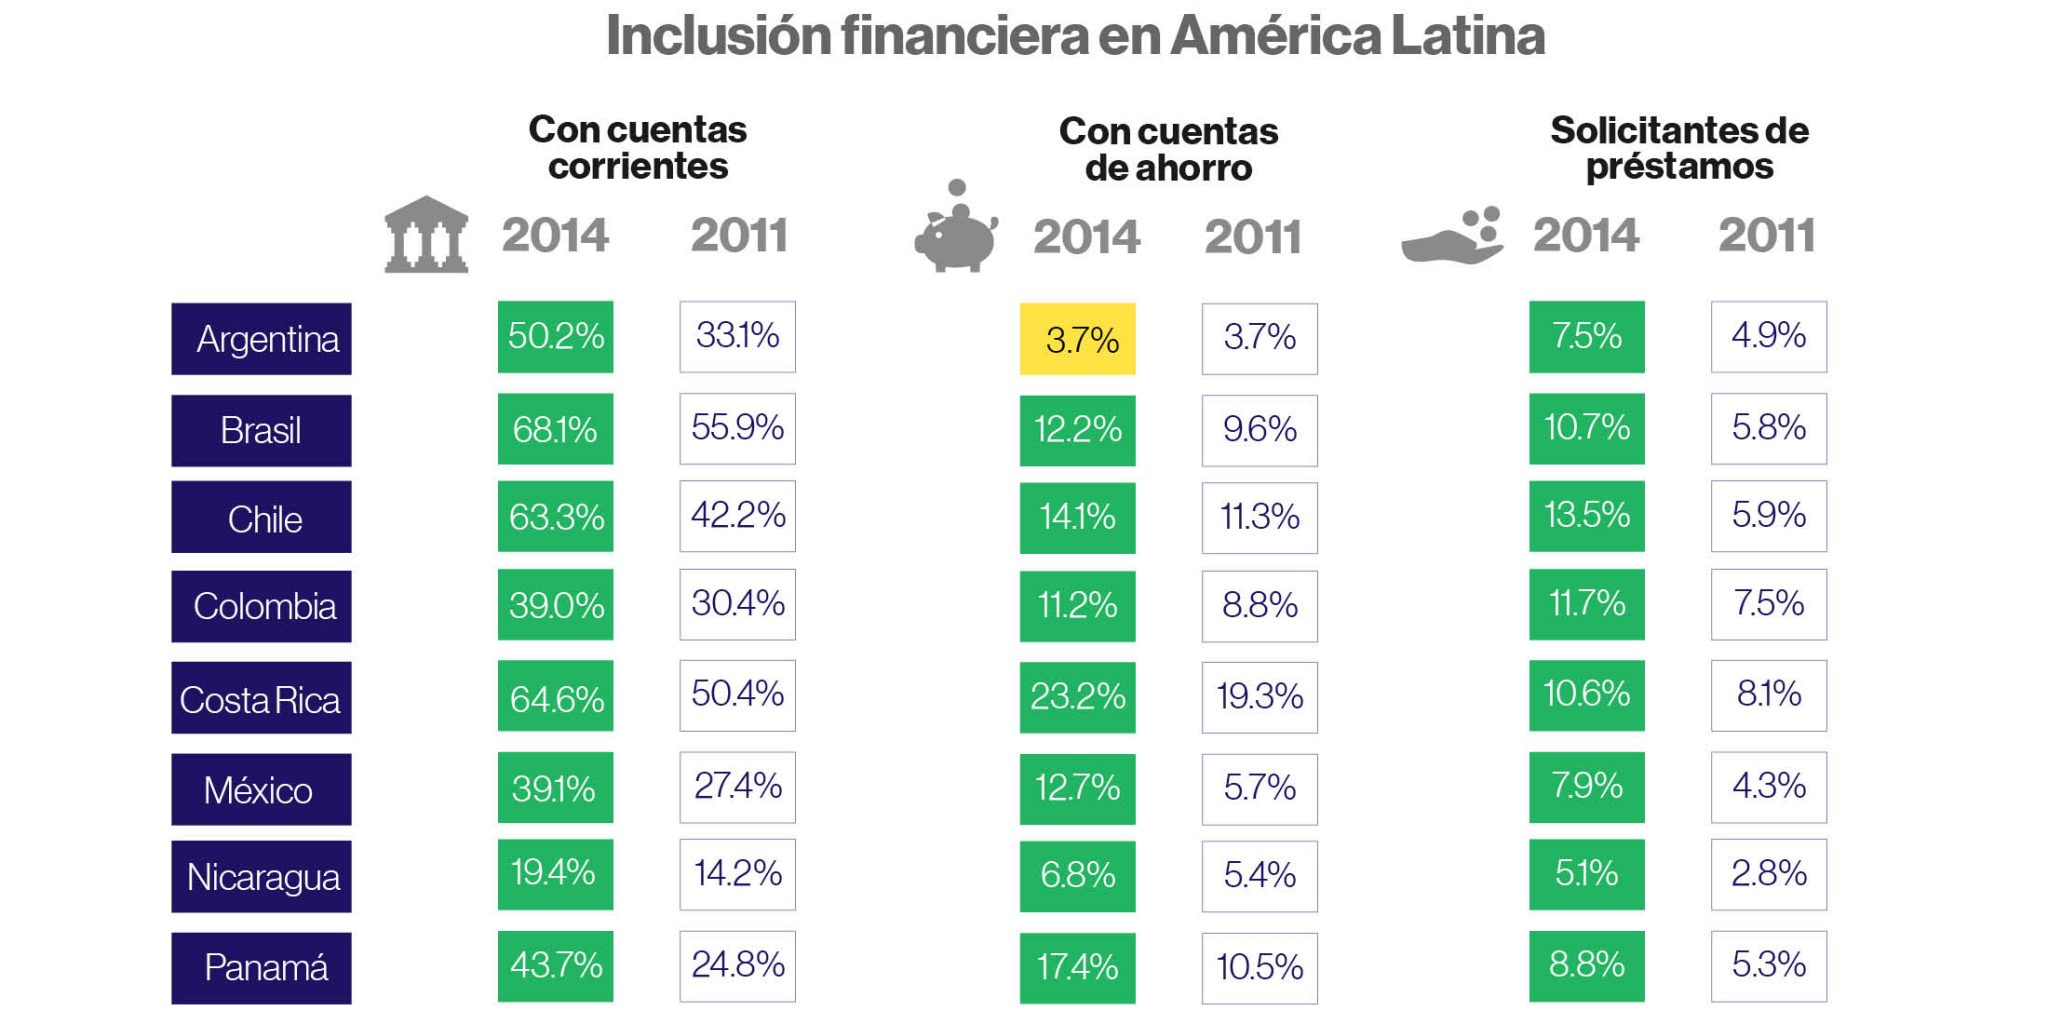 infografia-inclusion-financiera